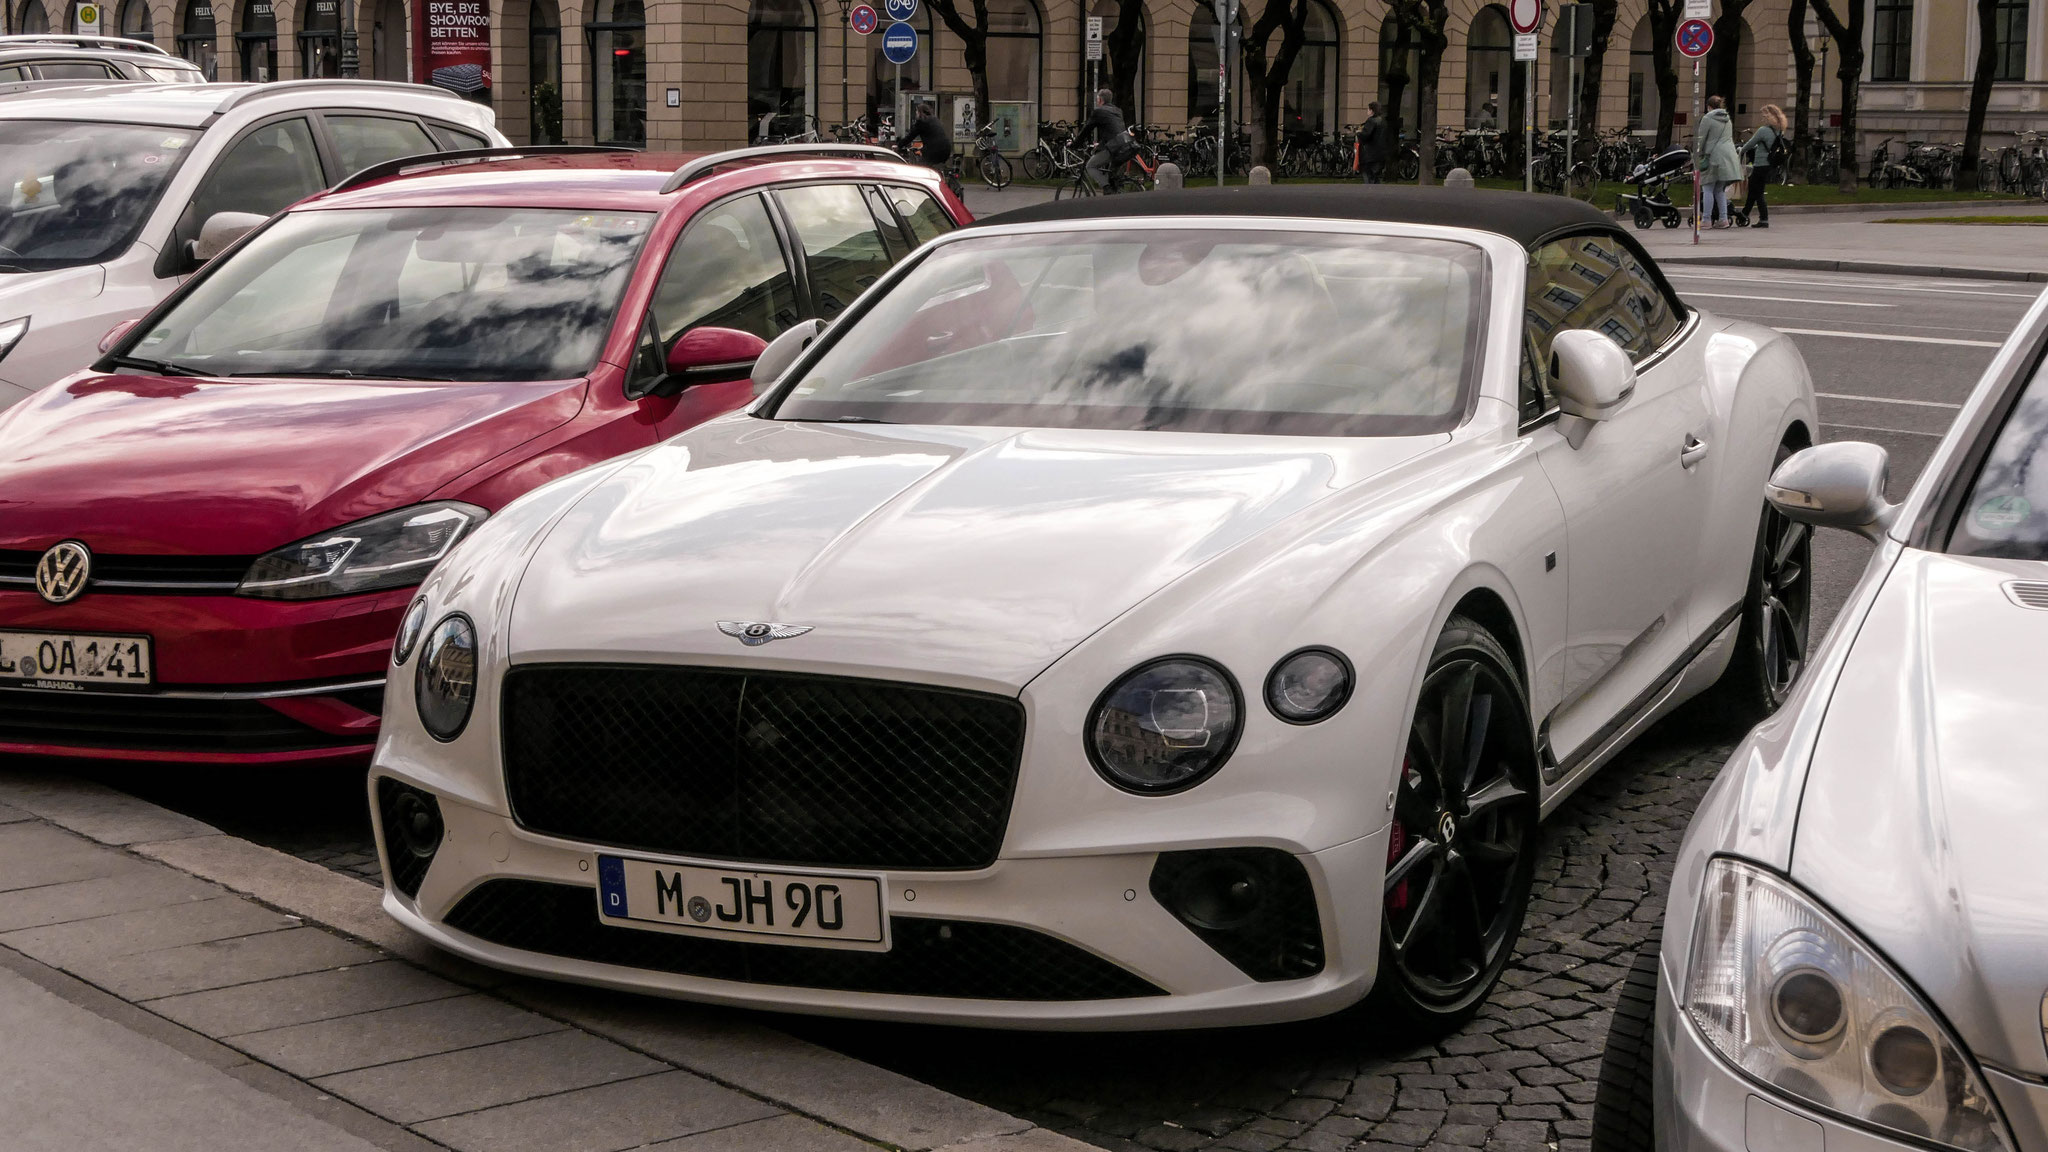 Bentley Continental GTC - M-JH-90